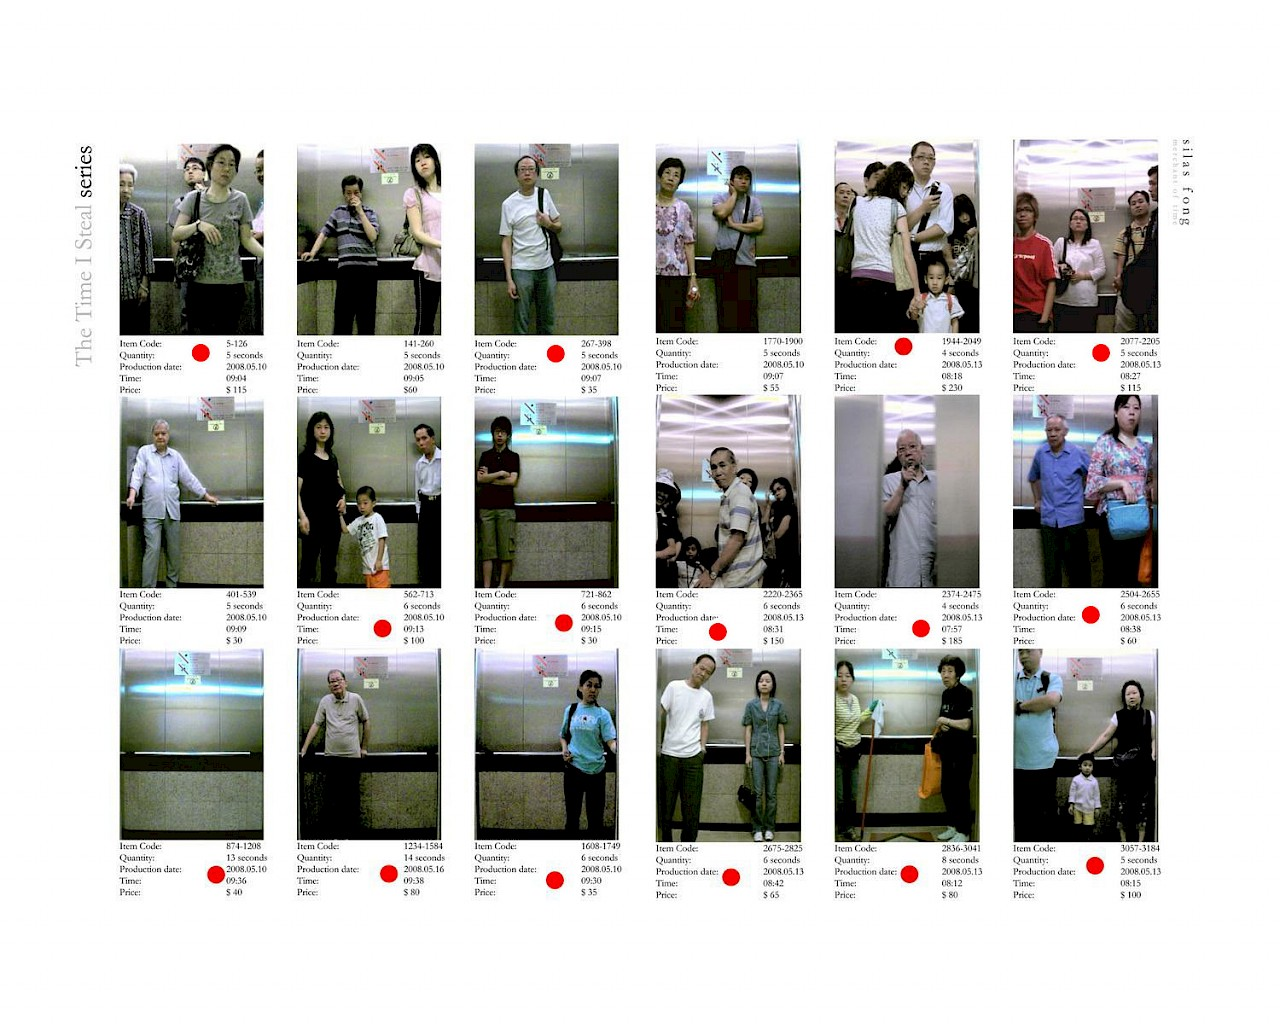 <p>Multiple images showing different iterations of people standing in an elevator. Each image has an item code, quantity, production date, time, and price written underneath.</p>